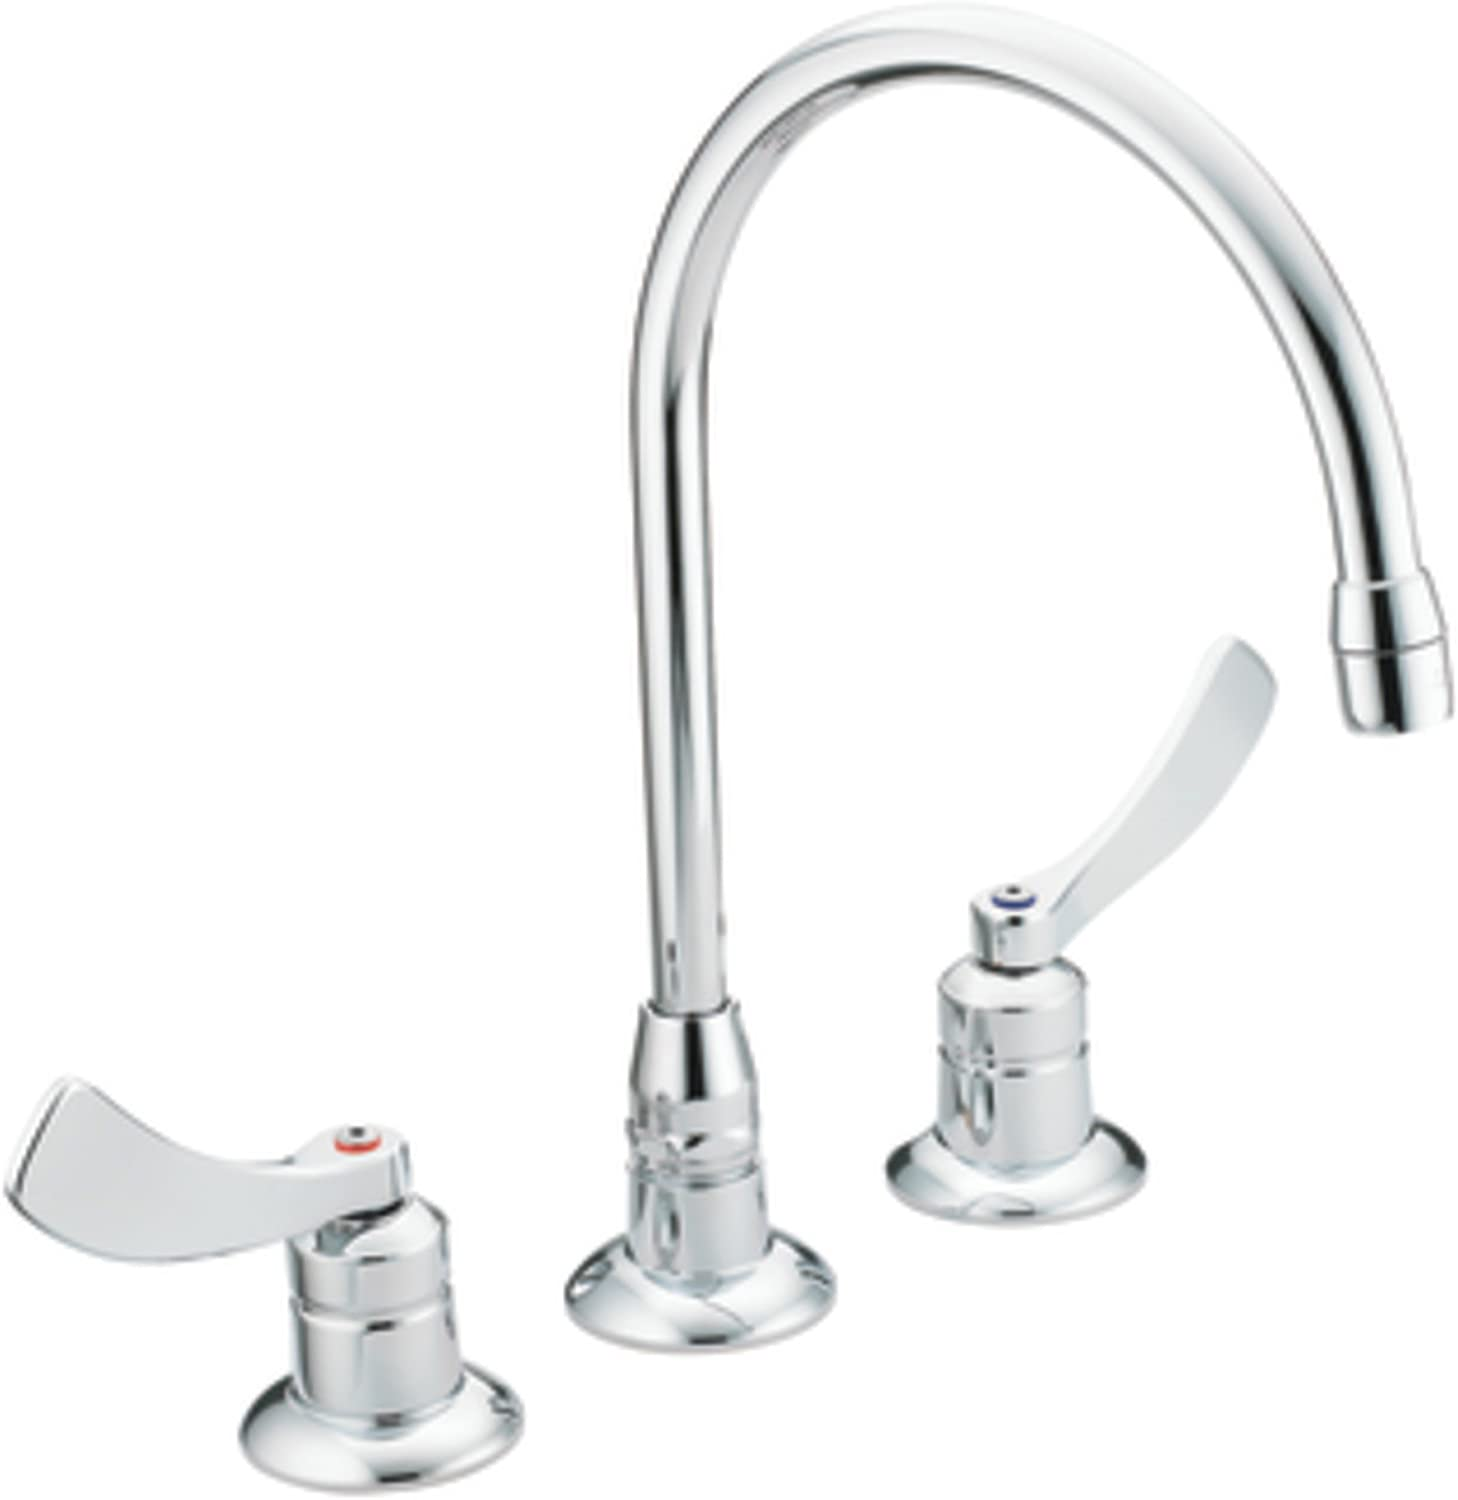 Moen 8225sm Commercial M Dura Widespread Kitchen Faucet With 4 Inch Smooth Wrist Blade Handles And 8 Inch Spout Reach 2 2 Gpm Chrome Touch On Kitchen Sink Faucets Amazon Com